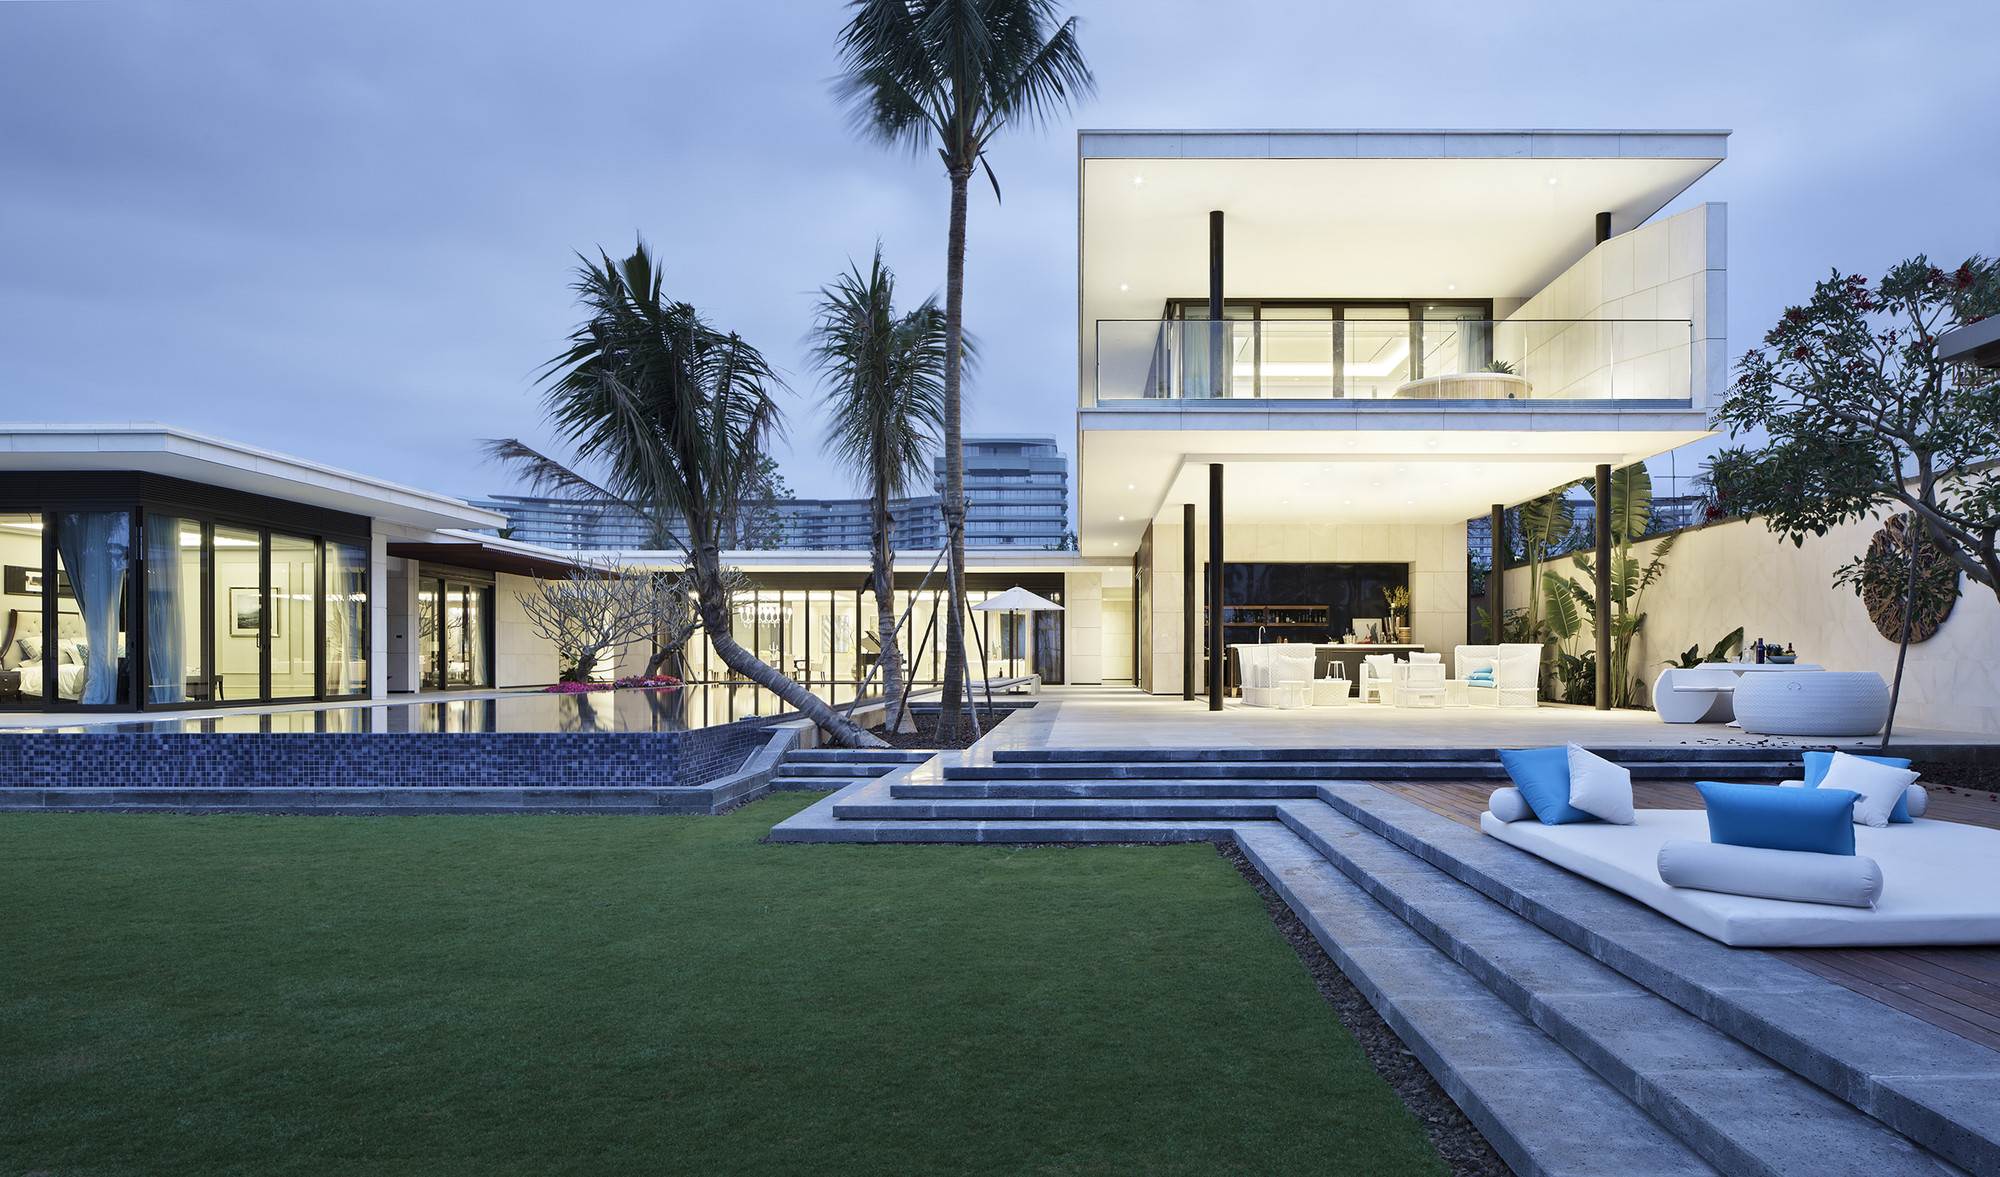 Chenglu villa gad archdaily World best design house